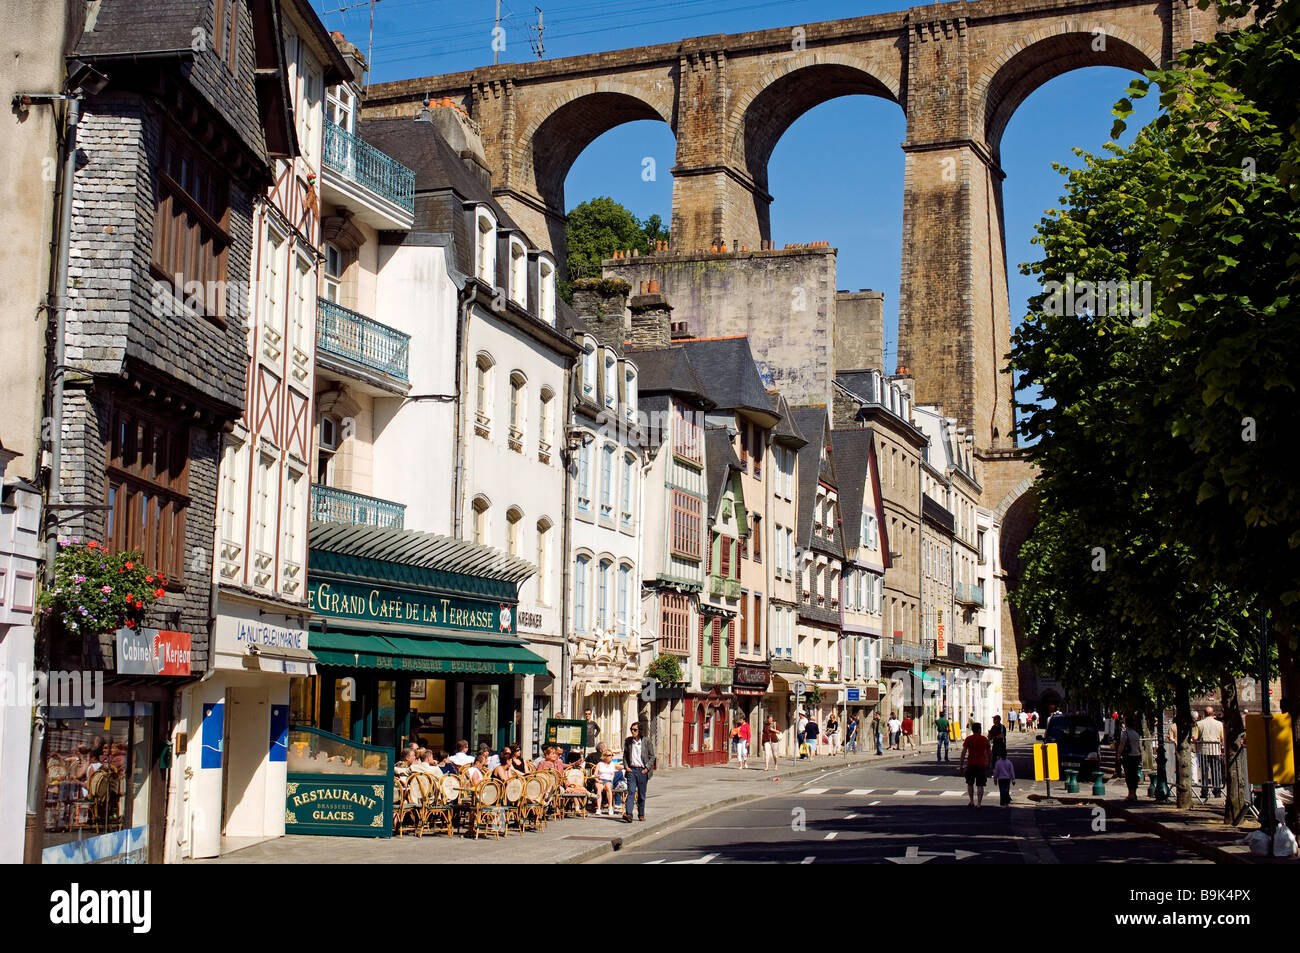 france finistere morlaix viaduct stock photo royalty free image 23163138 alamy. Black Bedroom Furniture Sets. Home Design Ideas